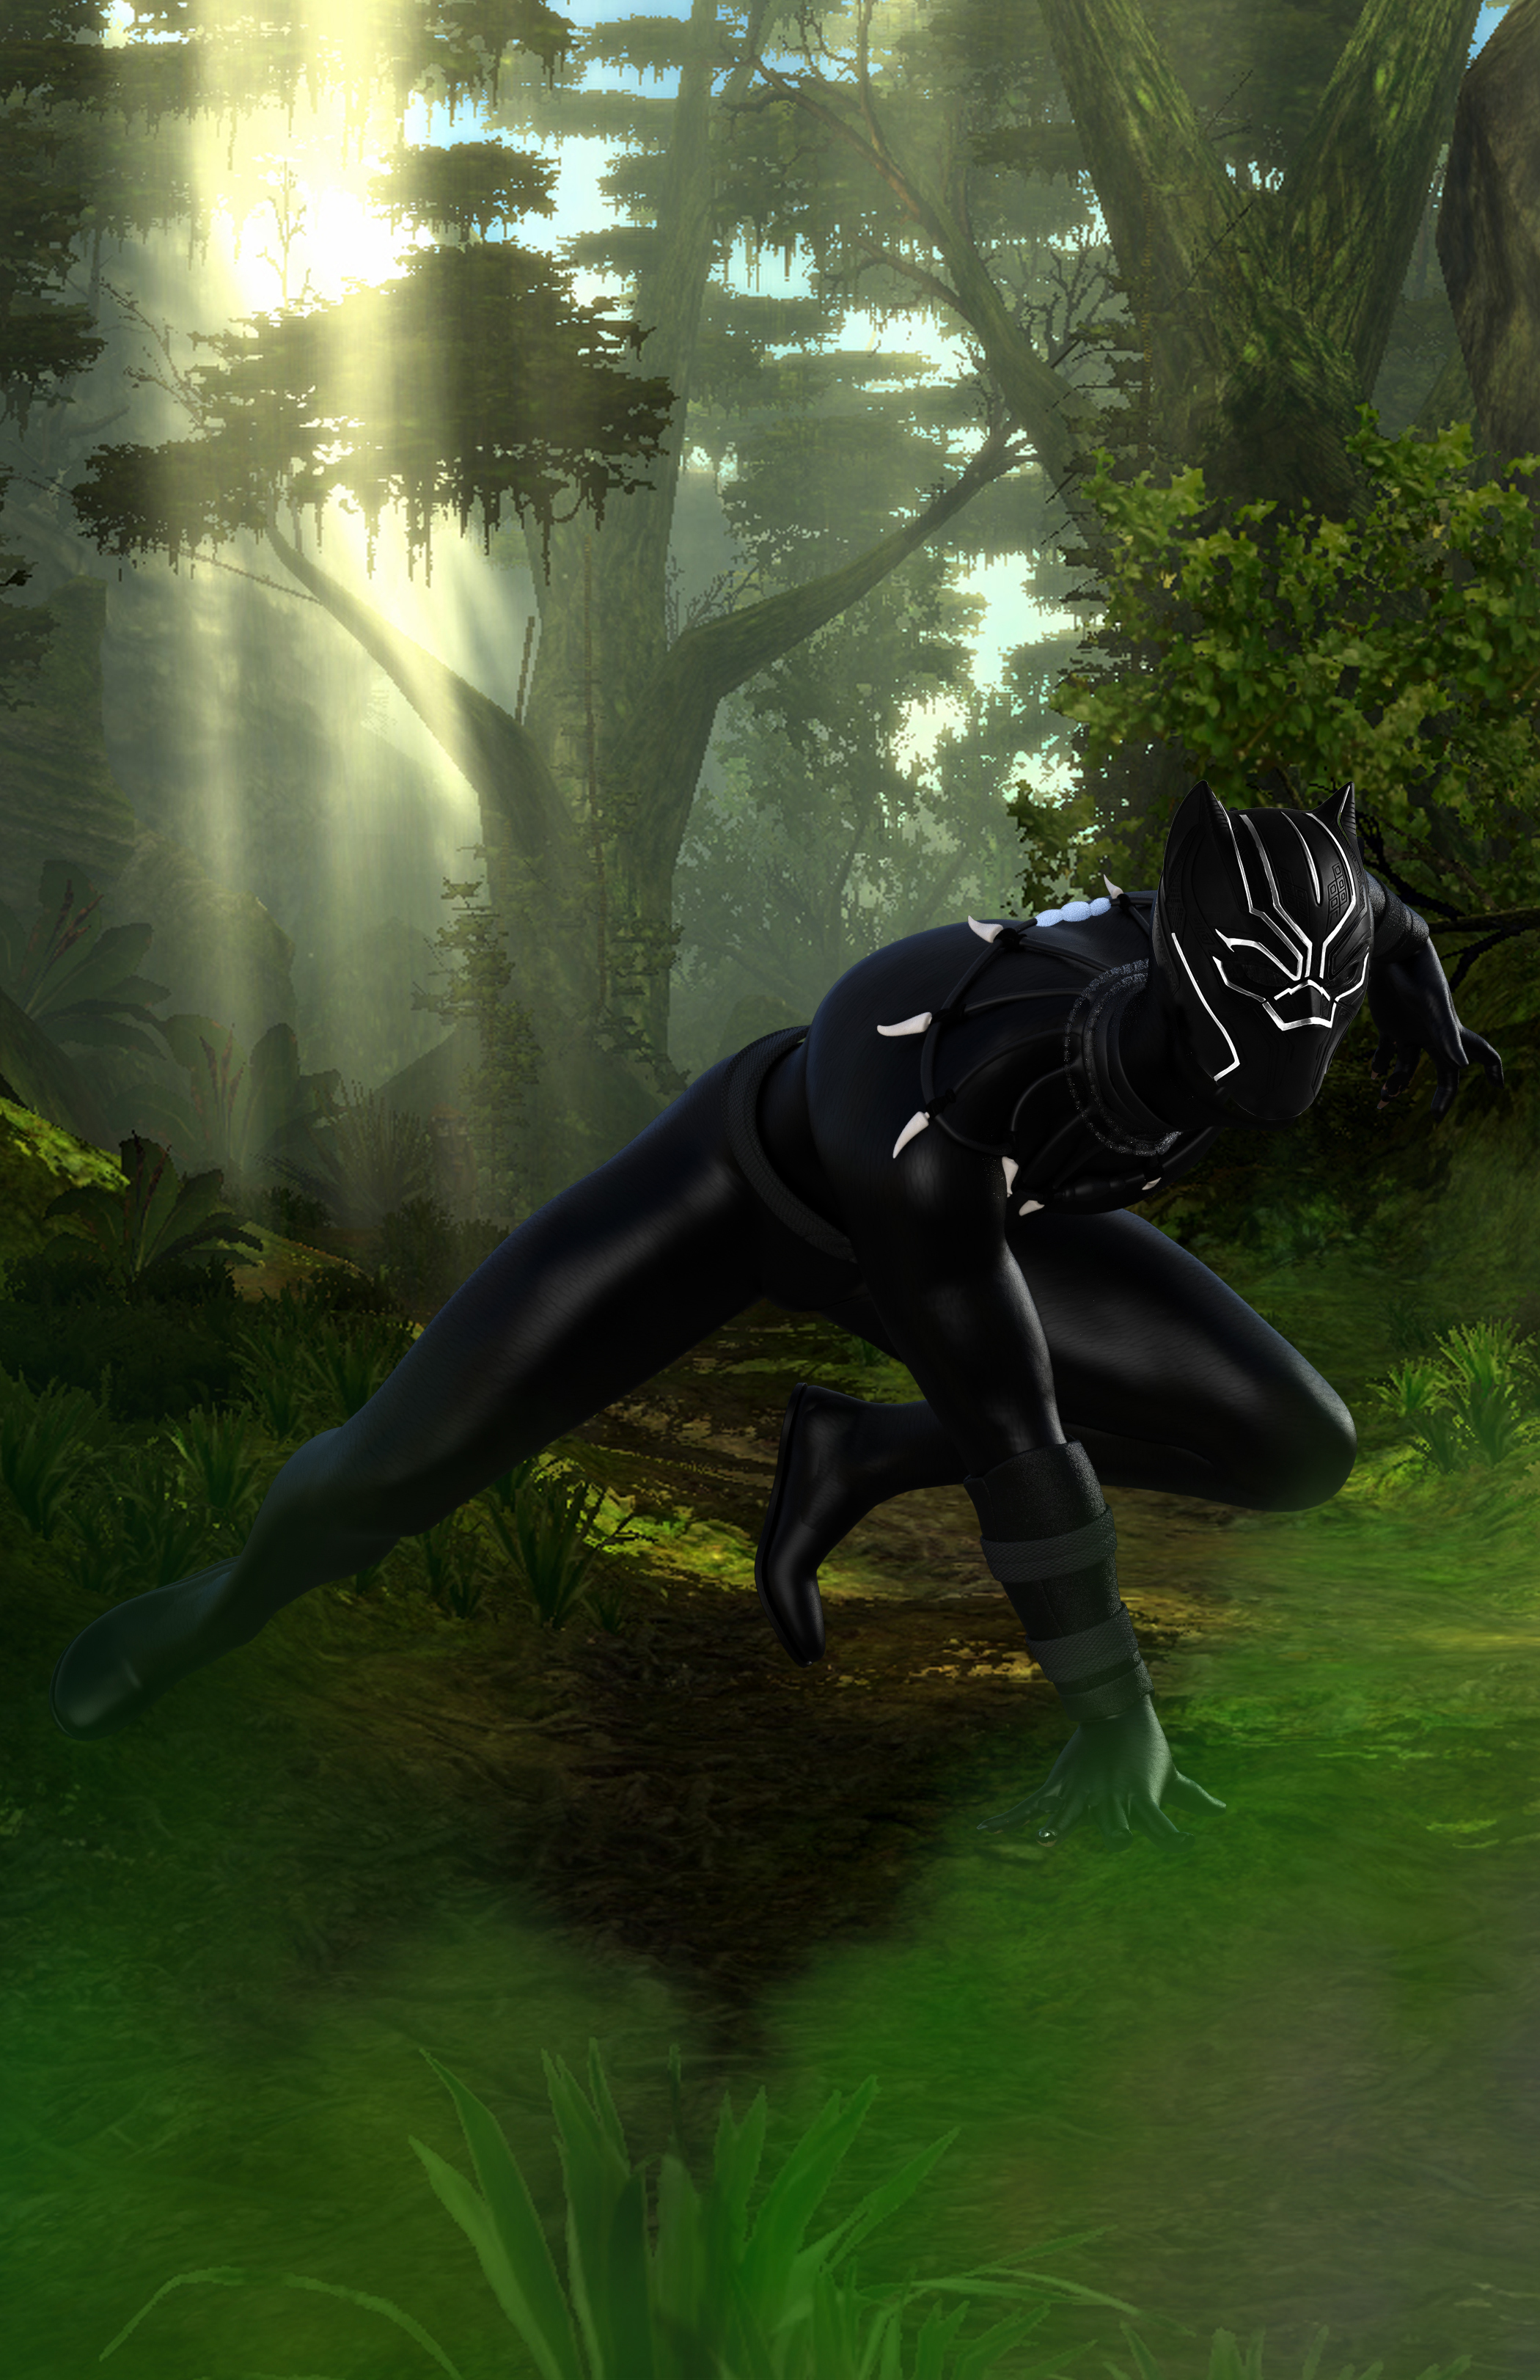 Beware the PANTHER!